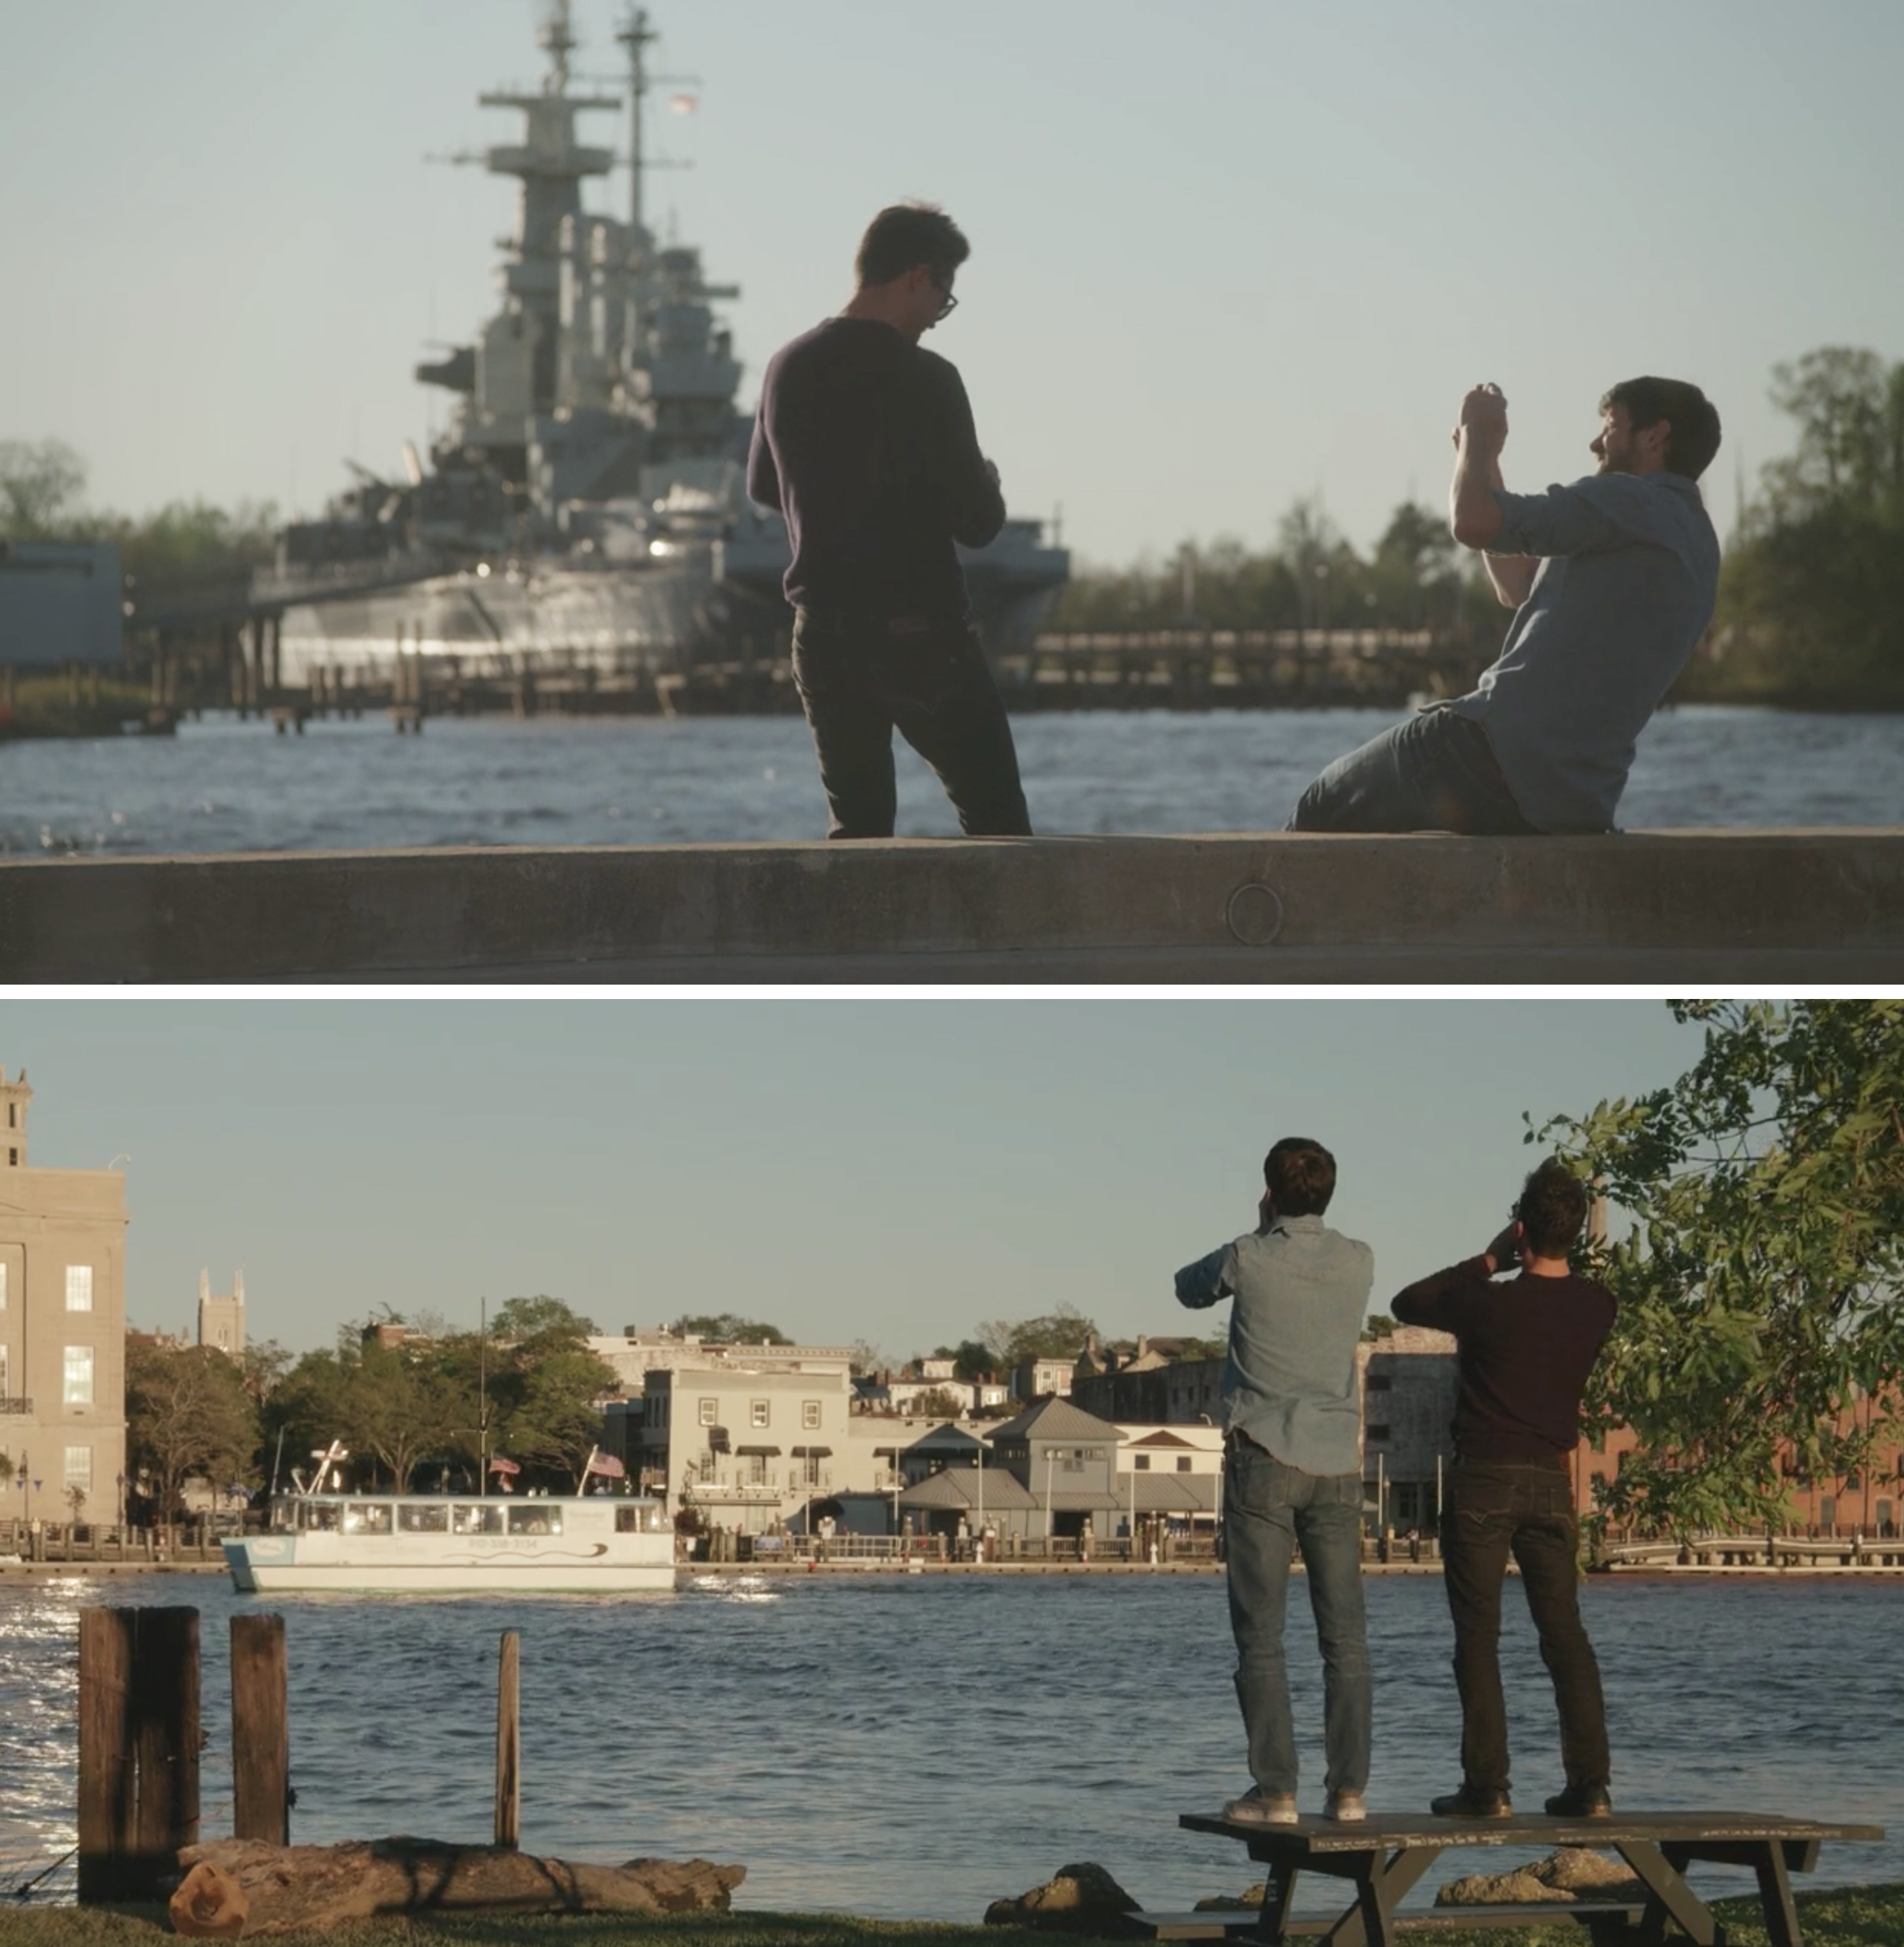 Jeremy and Seth taking pictures by the water and Jeremy and Seth standing near what looks to be the river court from One Tree Hill